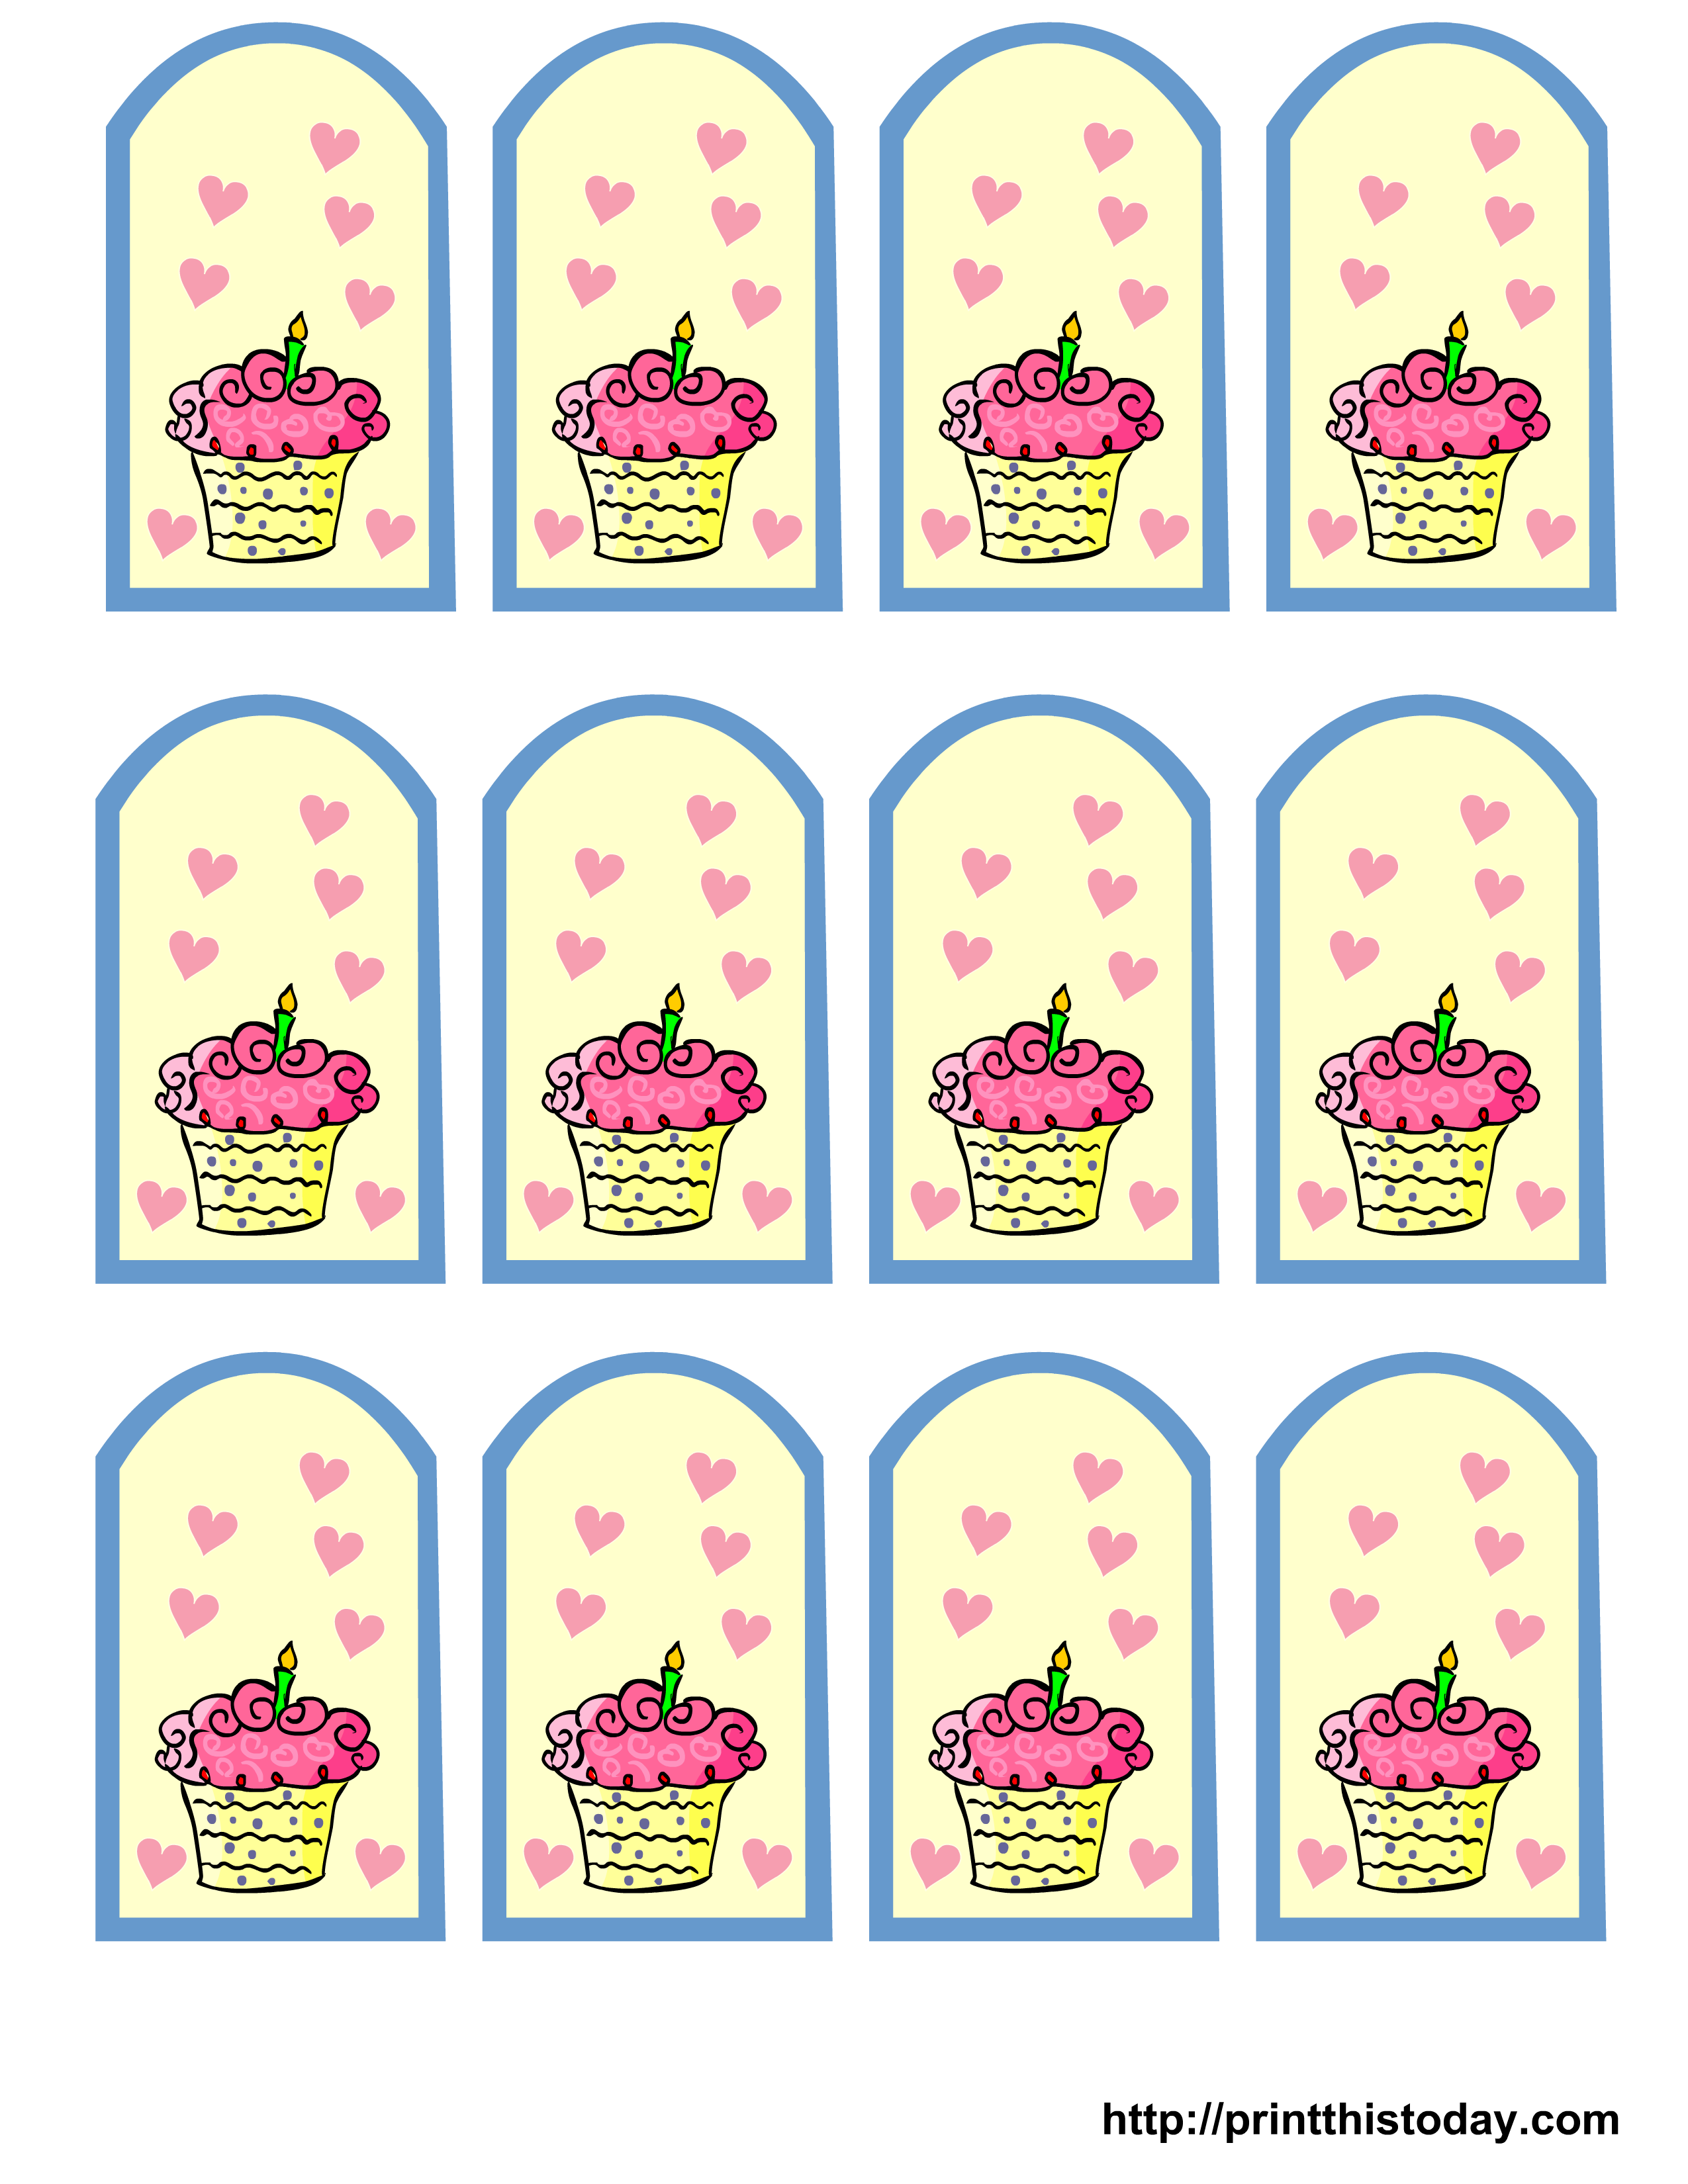 9 Images of Birthday Party Printable Favor Tags